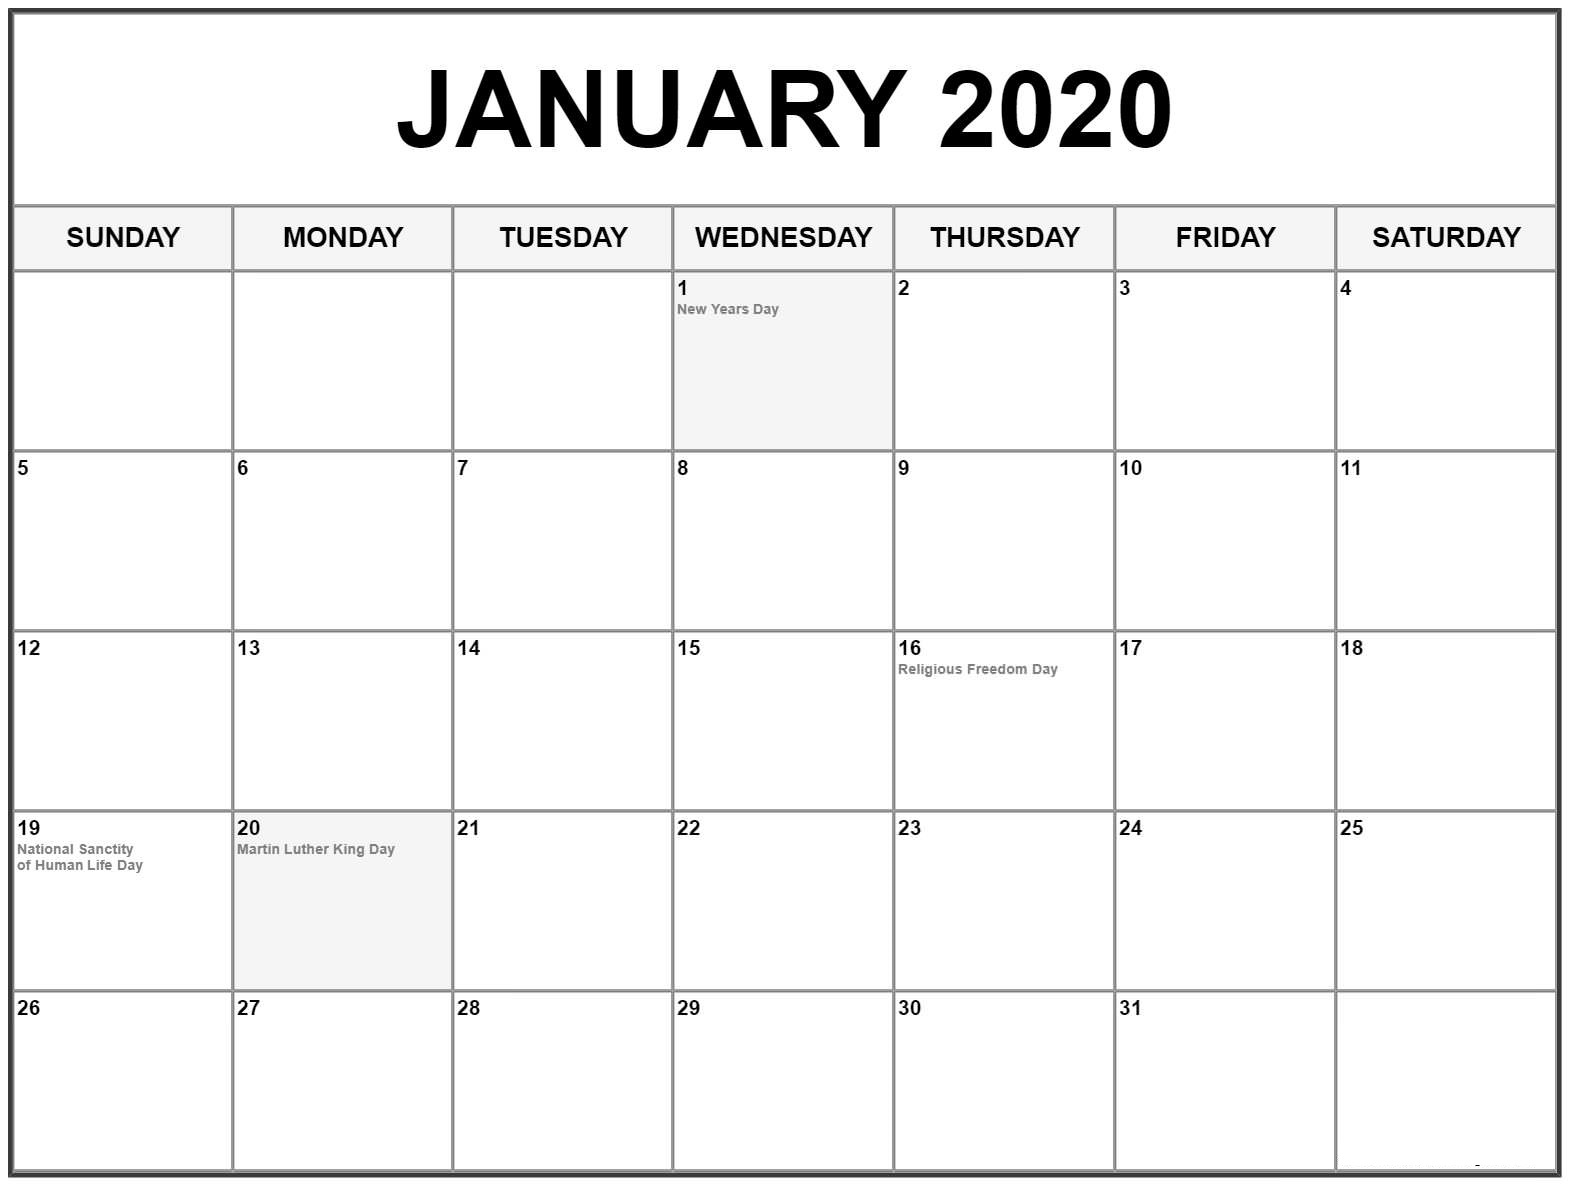 January 2020 Calendar With Holidays Bank National Public